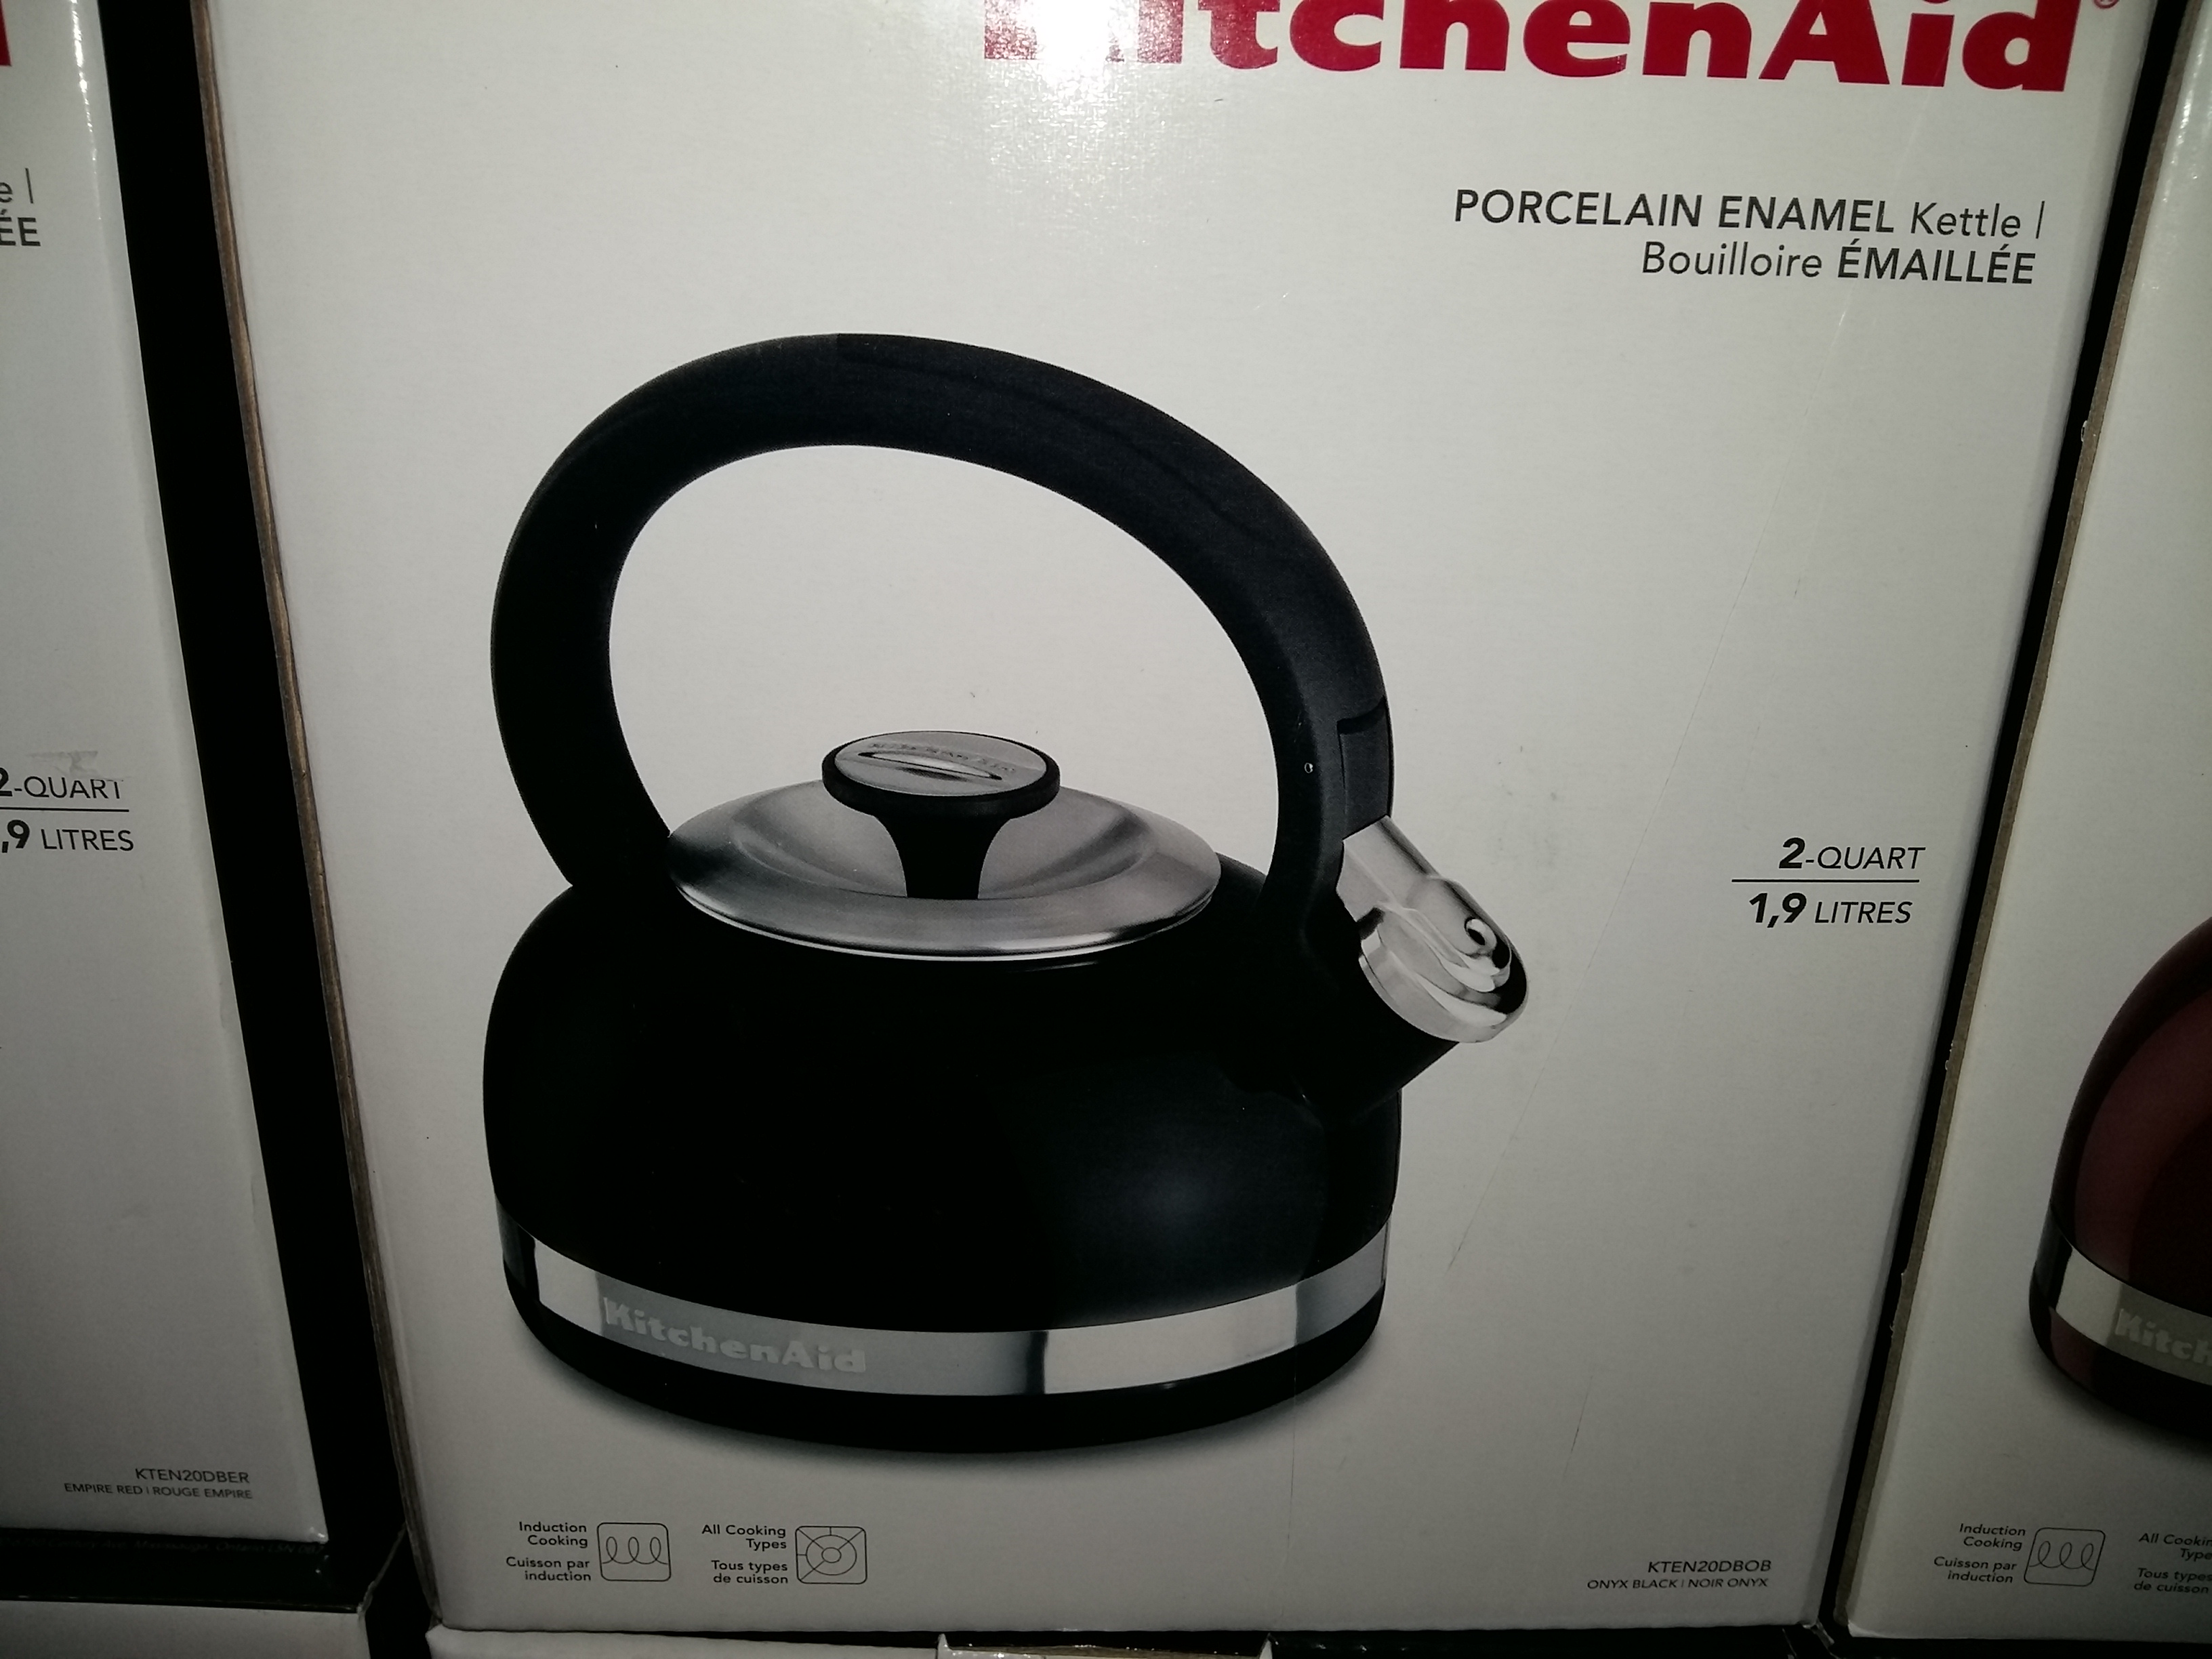 Чайник KitchenAid® 2-литра Porcelain Enamel Tea Kettle with Stainless Steel Handle Черный